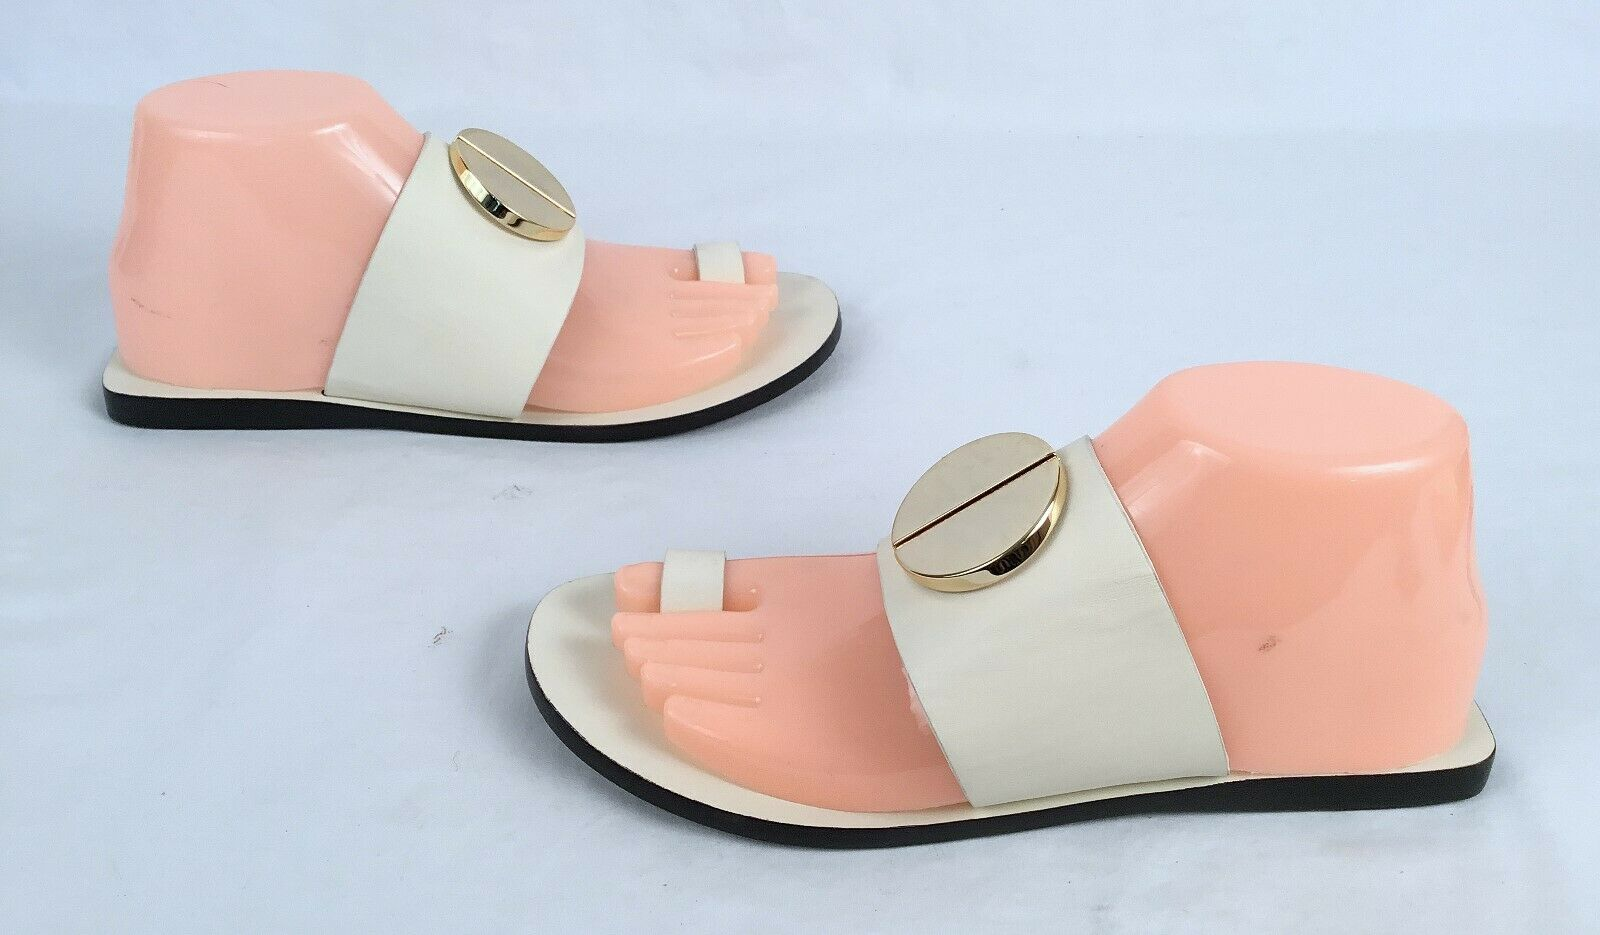 Mercedes Castillo & 039;Fallon& 039; Toe Loop Sandal - Size US 6.5 EU 36.5- 425 (J1)